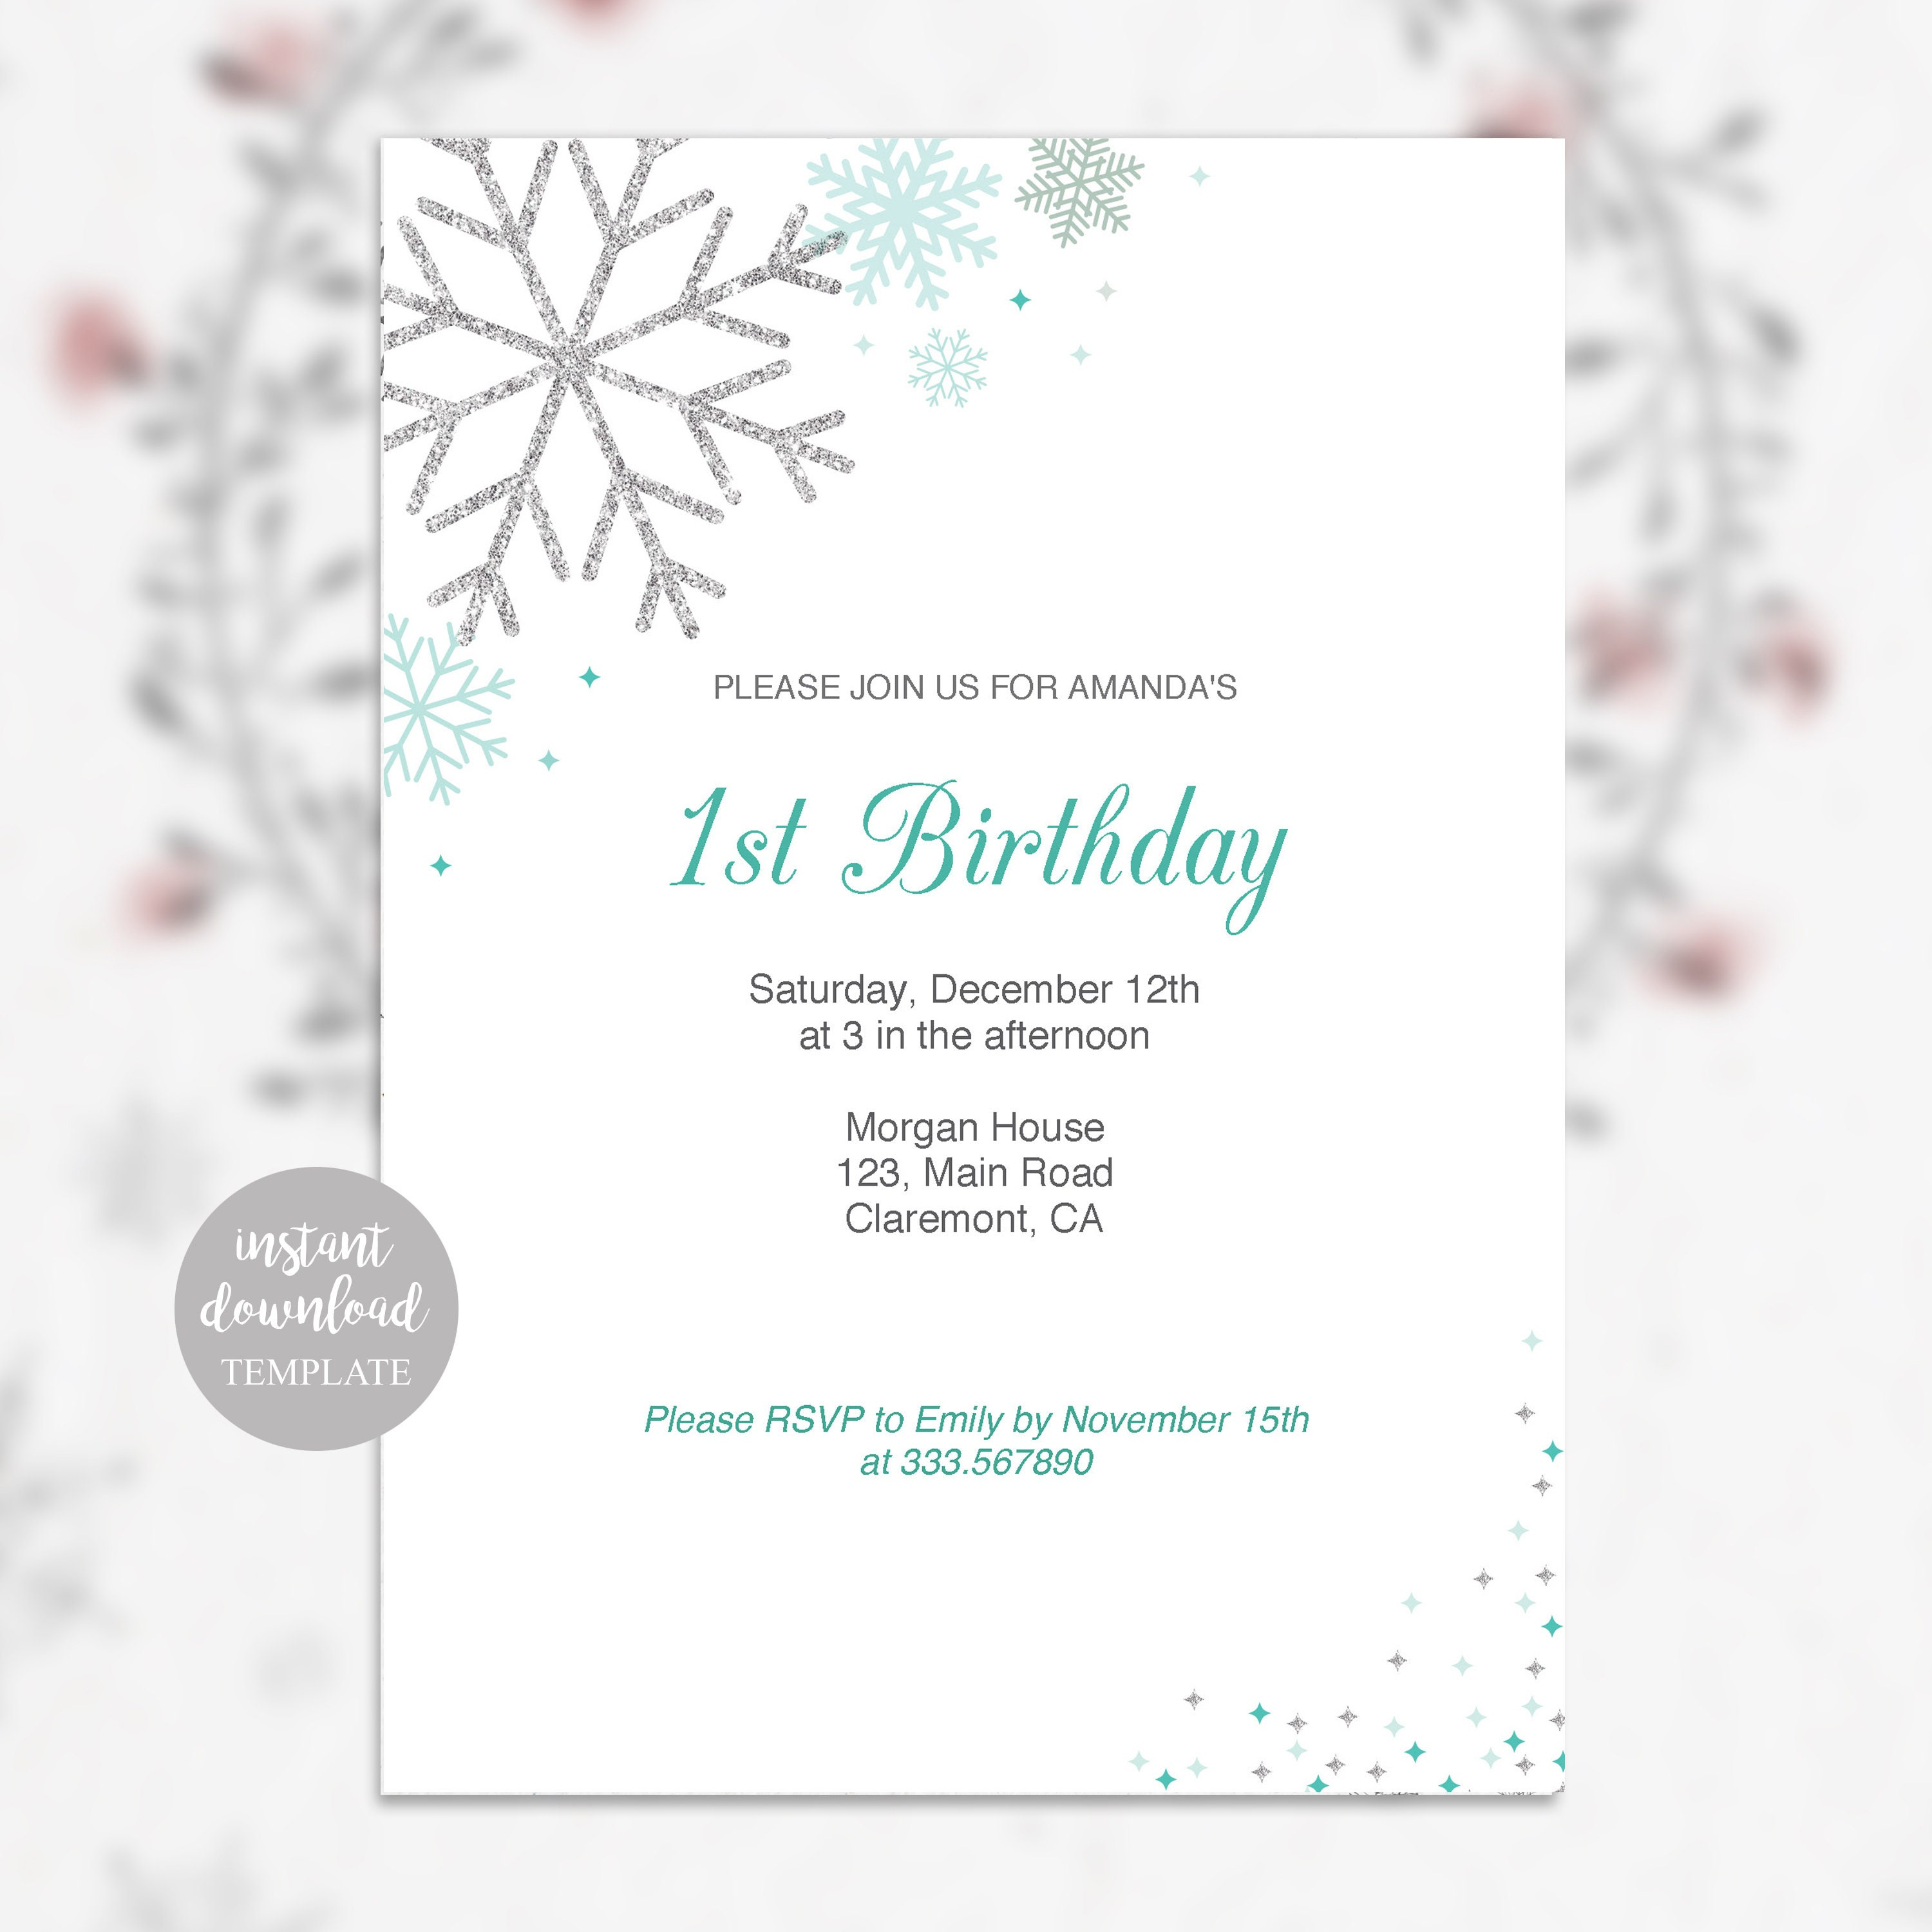 Winter Birthday Party Invitation Card With Snowflakes In